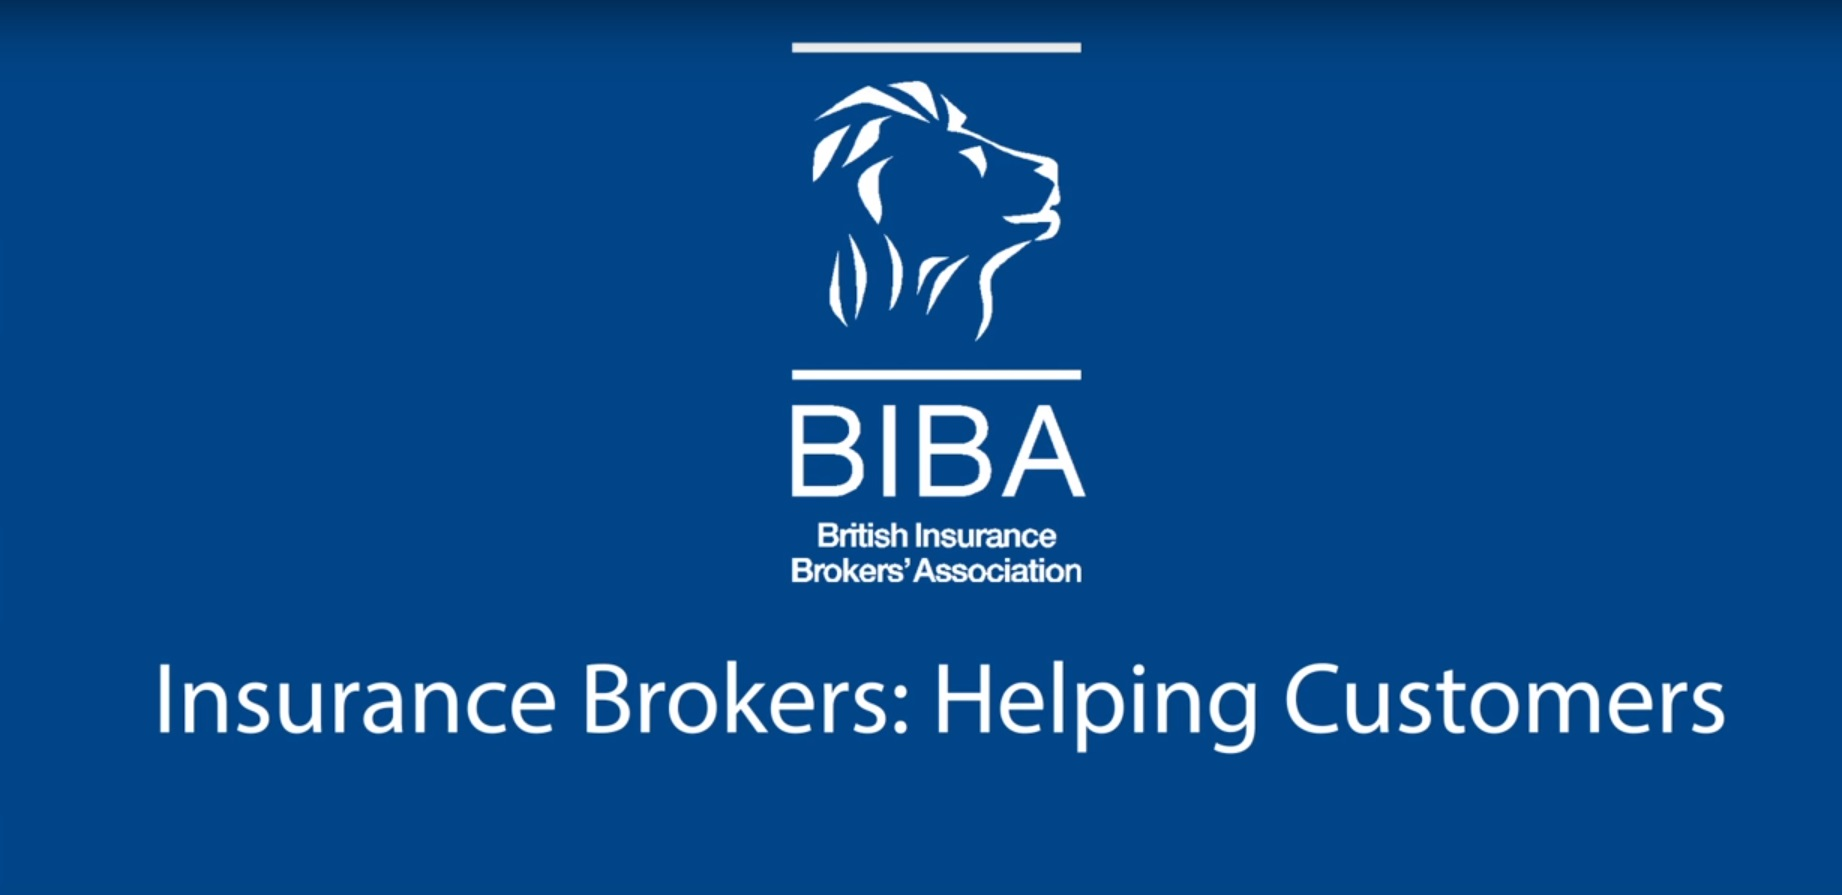 british insurance brokers association - HD 1842×895